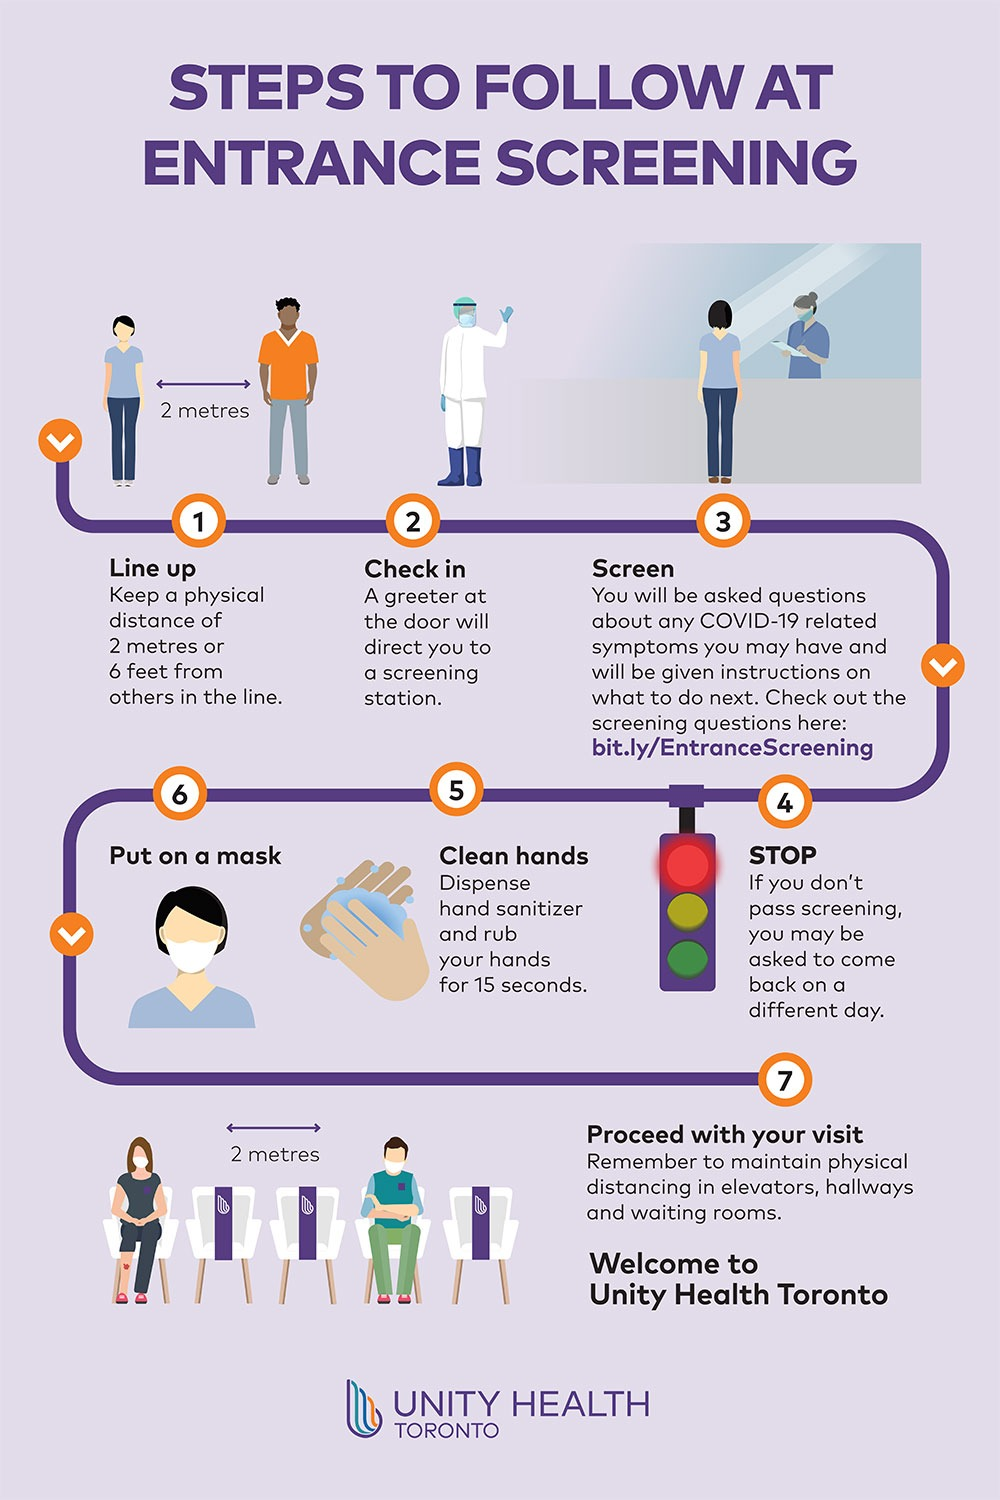 steps to follow at entrance screening infographic